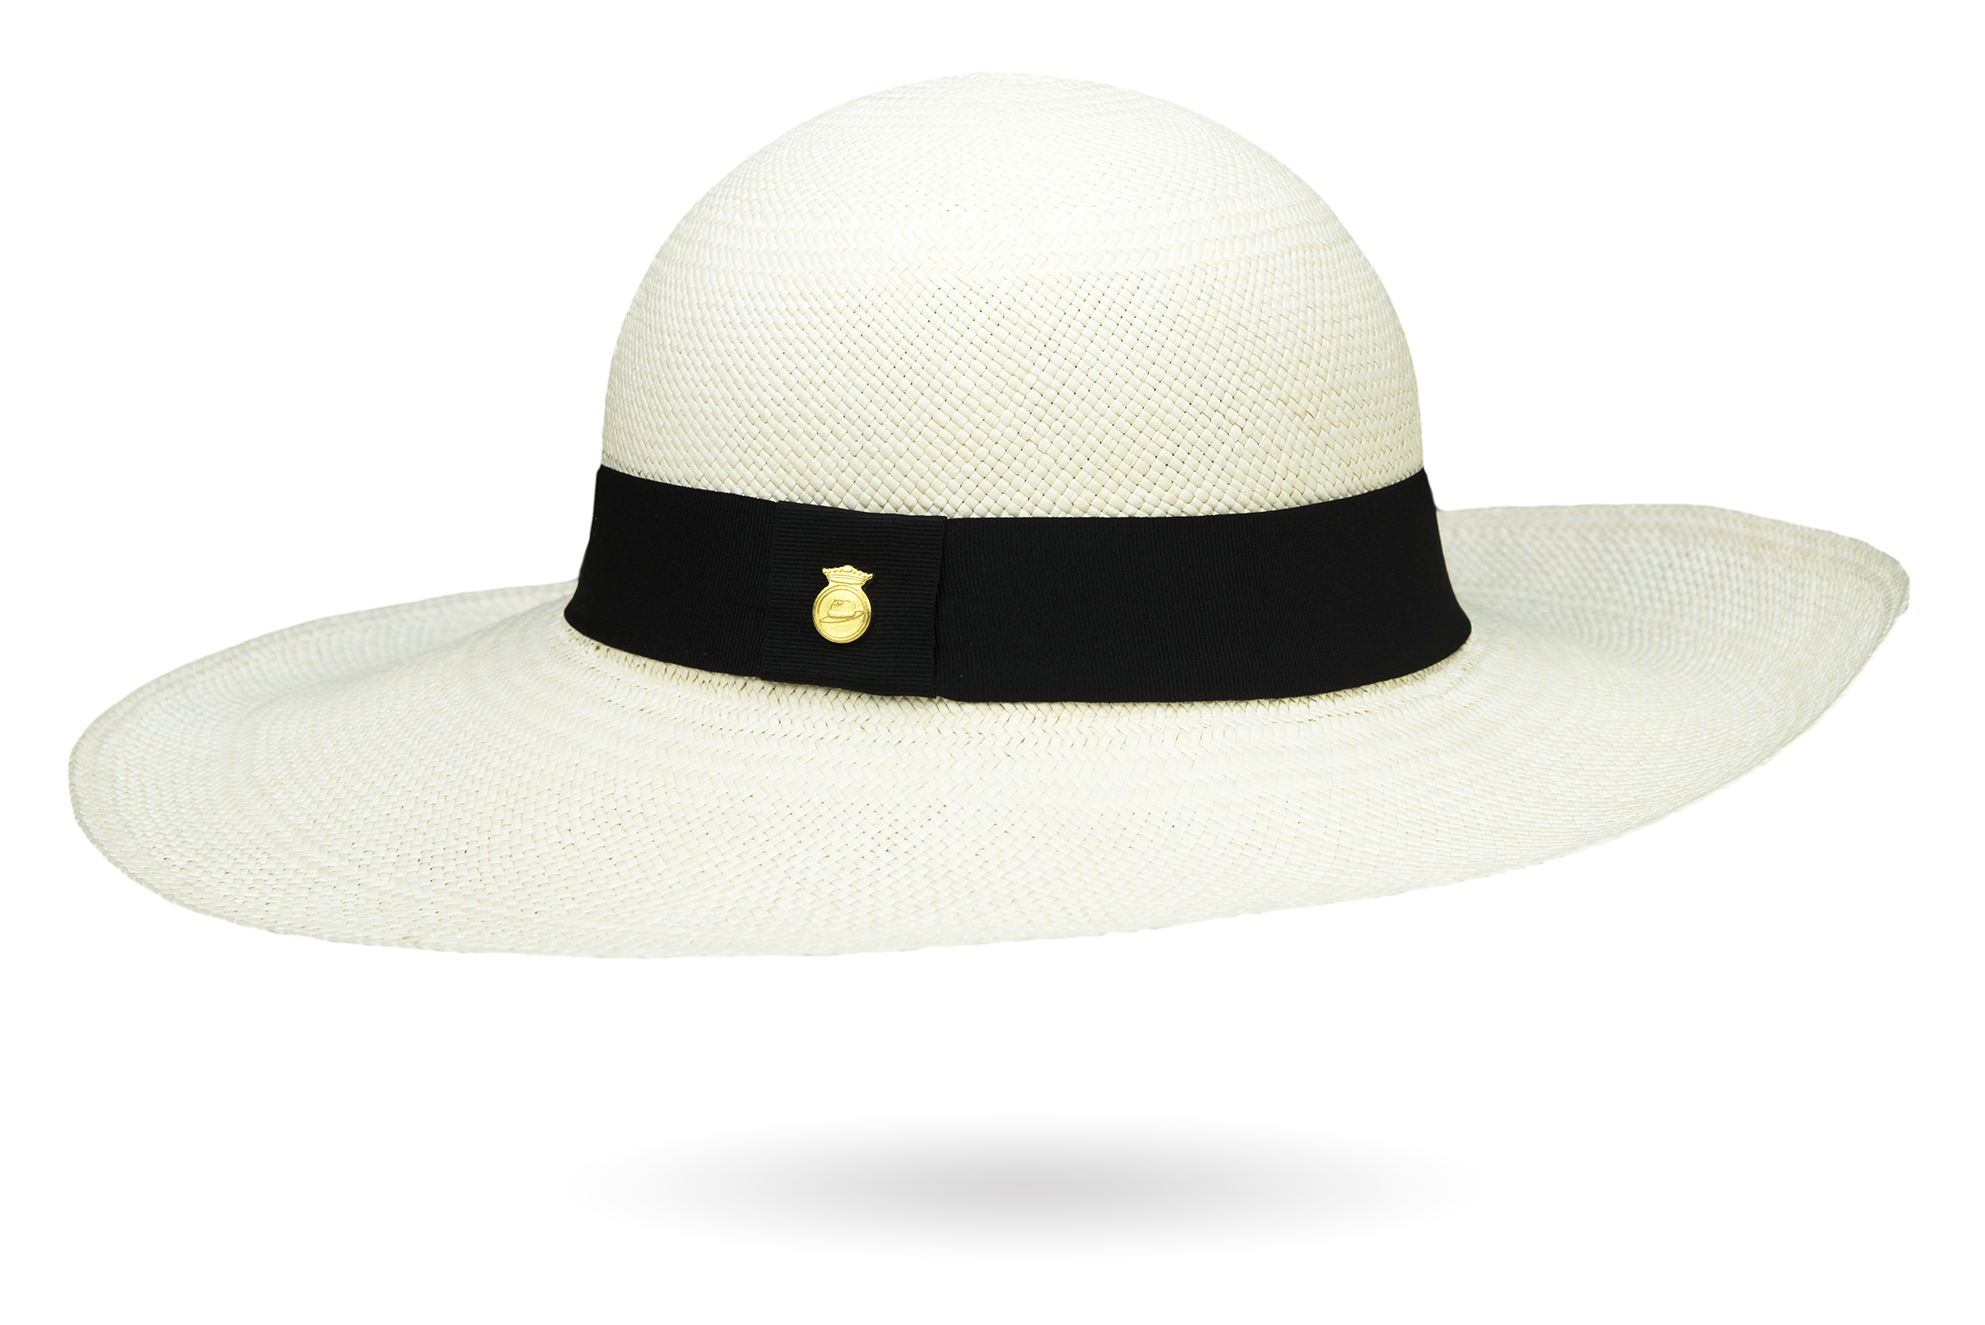 panama hat womens uk white large brim